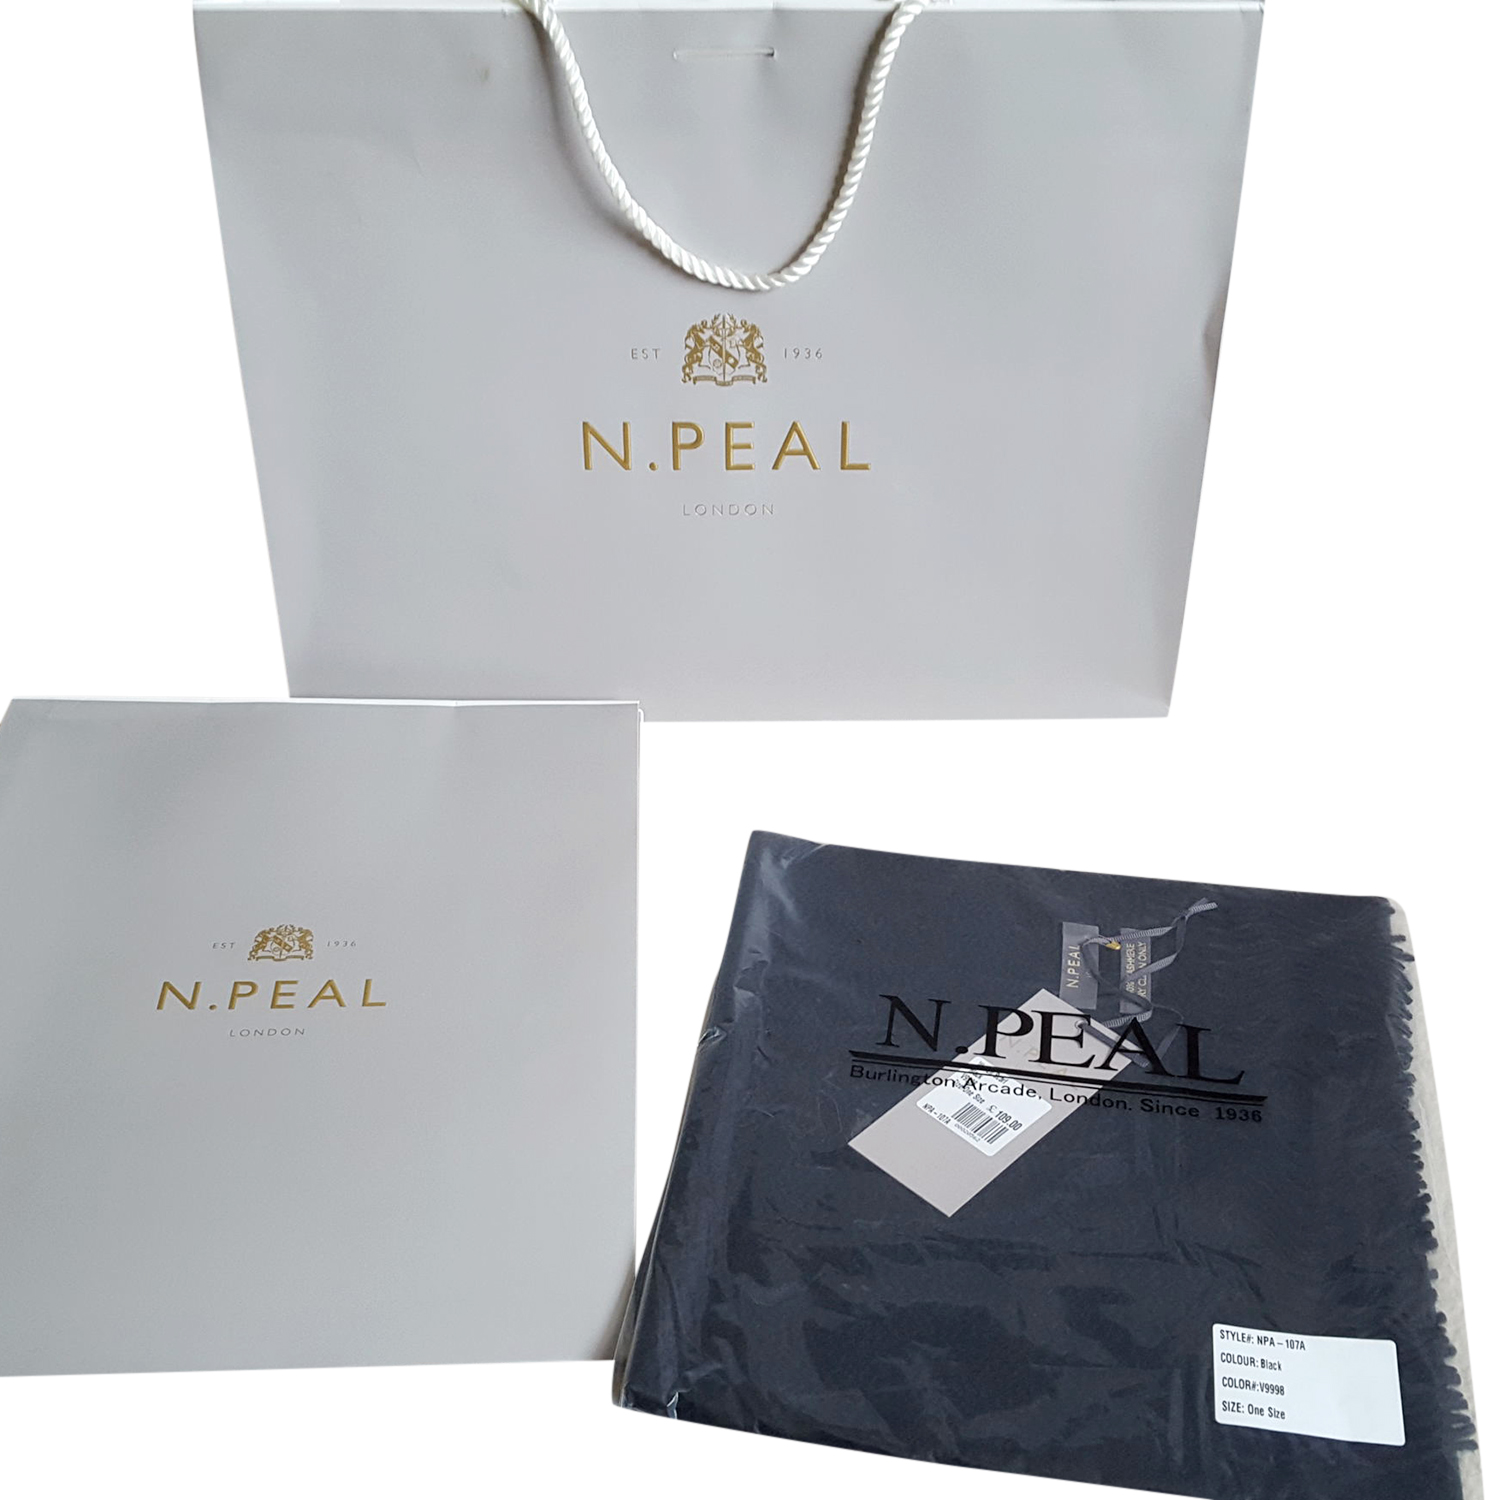 N.Peal black cashmere scarf